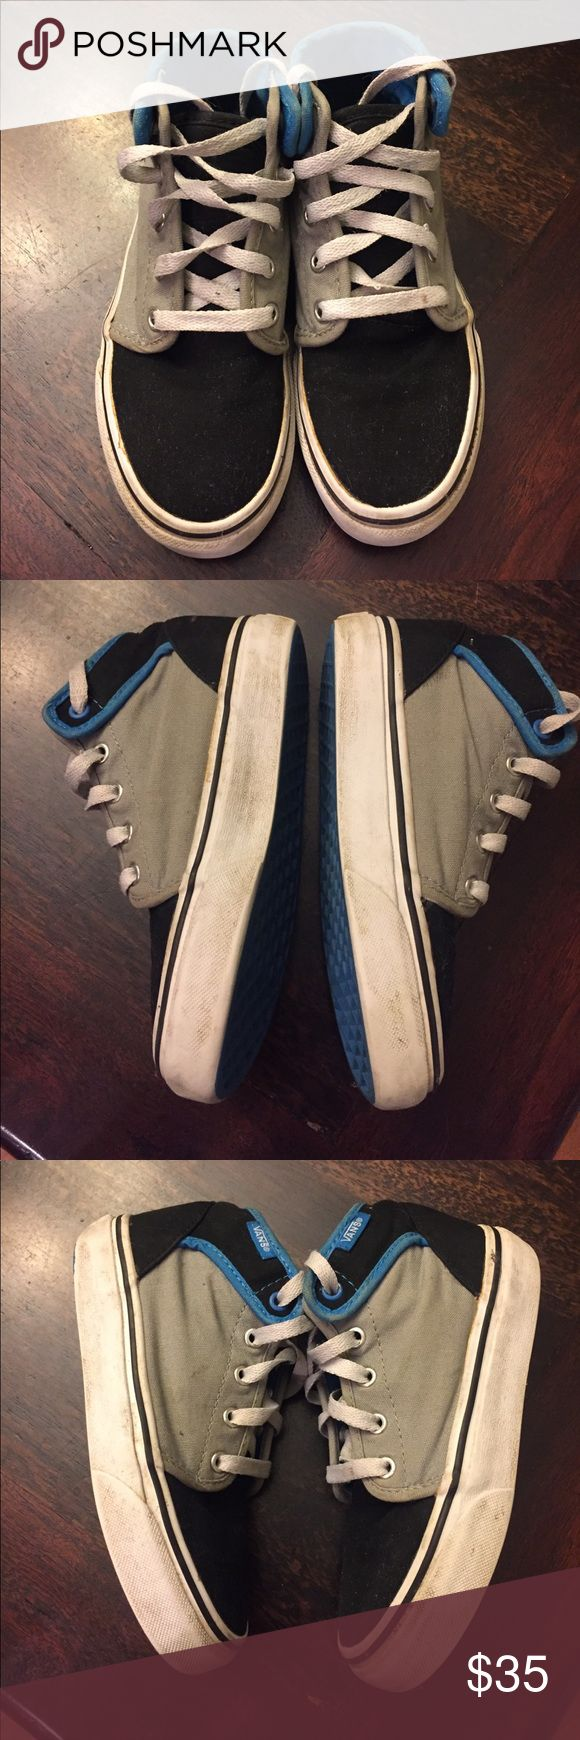 Boys Vans high-tops These are in very good condition! Were only worn a few times. Shoe laces could use a wash. Vans Shoes